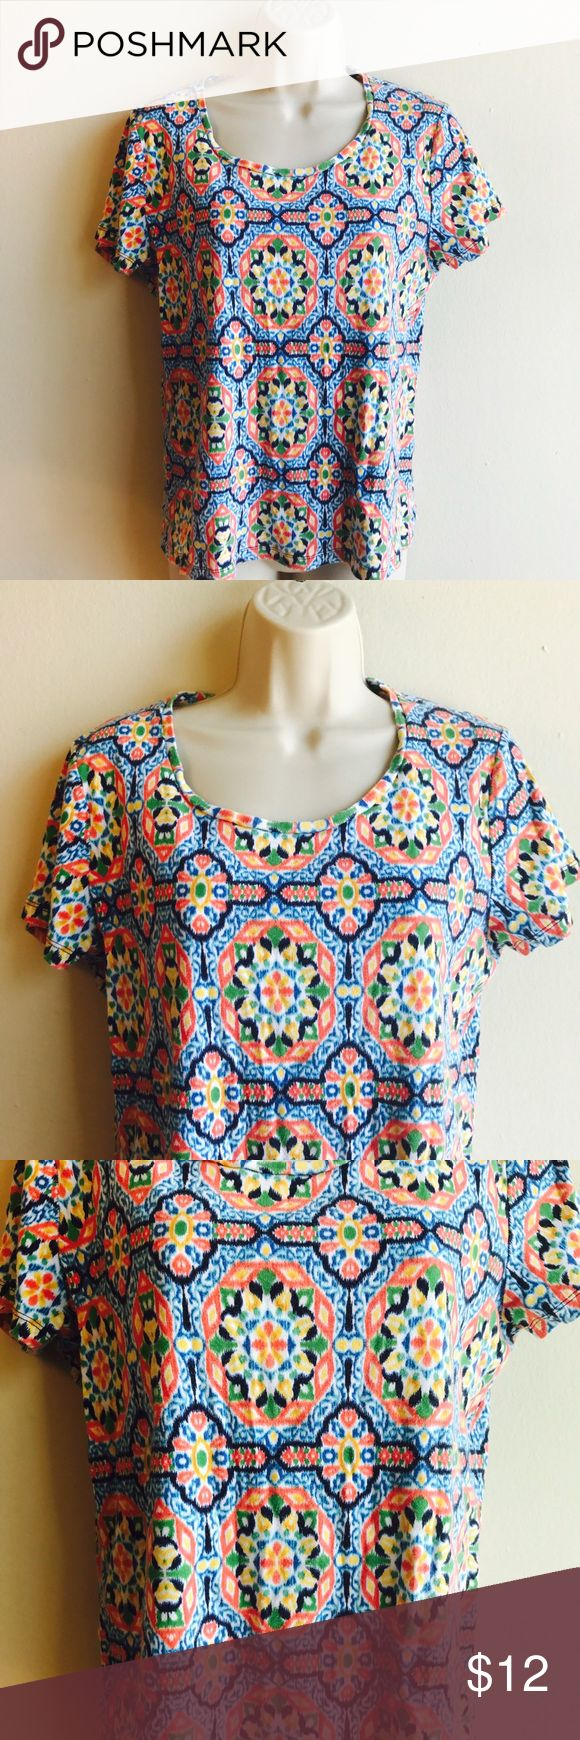 Jones New York Multi Color Shirt Beautiful multi color geometric print shirt 👚 tag says Xl but it fits like a loose small or a fit medium. In good condition. Bundle to save more. No trades. Jones New York Tops Tees - Short Sleeve